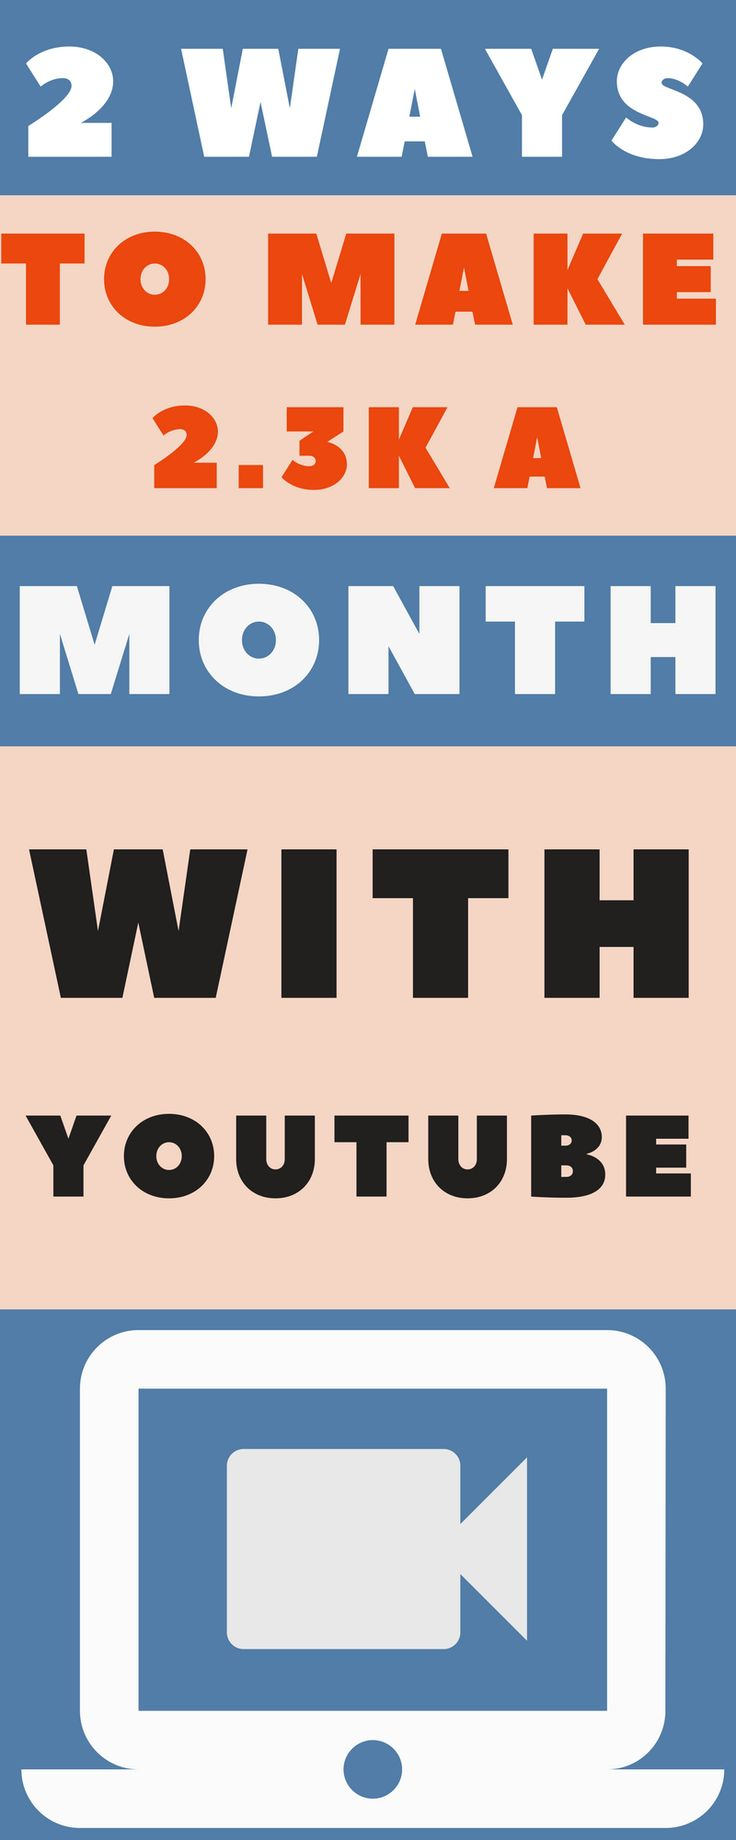 Learn to make money online and a full time living using youtube and email marketing. Super simple and straight forward method. #BlogTraffic #YouTube #emailMarketing